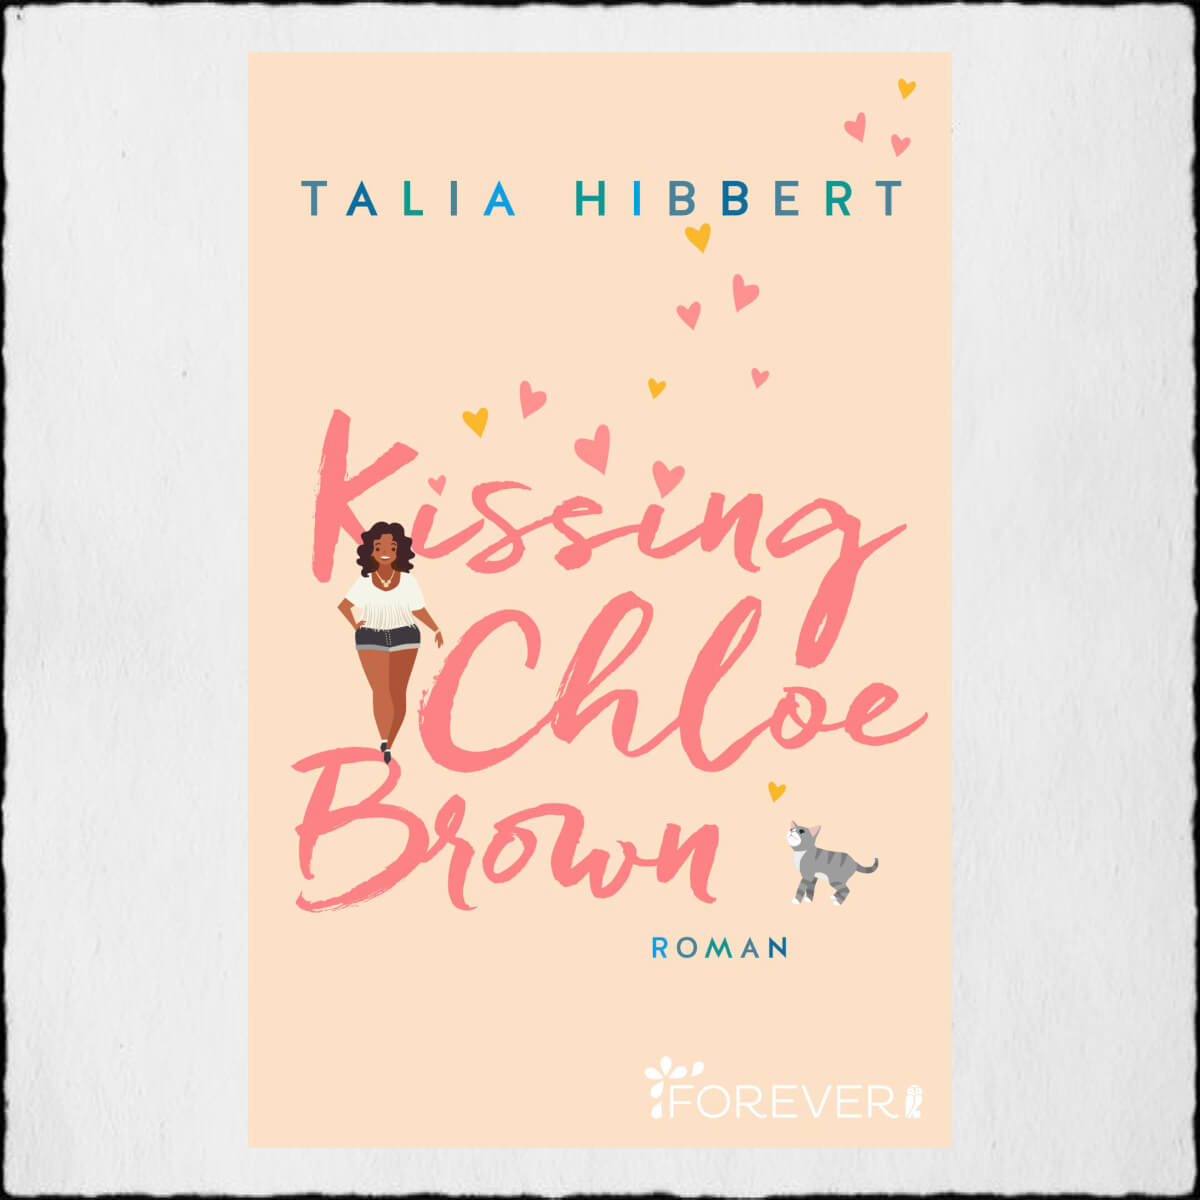 "Talia Hibbert ""Kissing Chloe Brown"" ©2020 Forever by Ullstein Verlag"